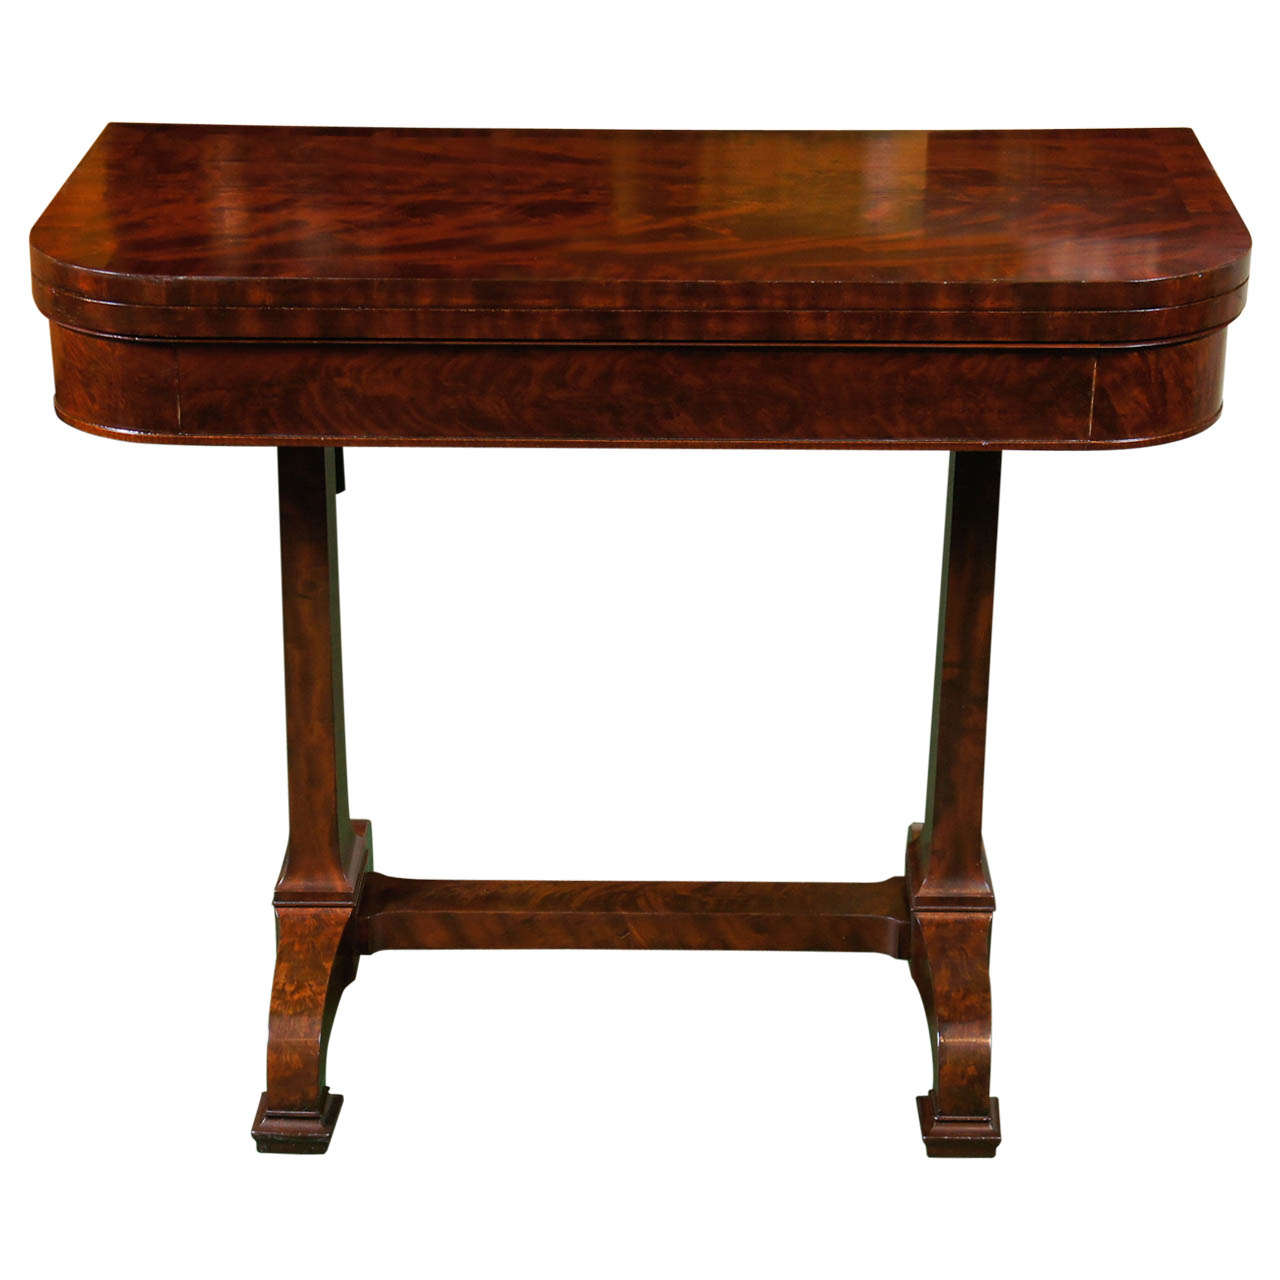 Details about 48 inch round formal duncan phyfe rosewood dining table - Period New York Mahogany Card Table By Duncan Phyfe At 1stdibs Center Table Drum Or Dining With Drawers 48 Inch Round Formal Duncan Phyfe Rosewood